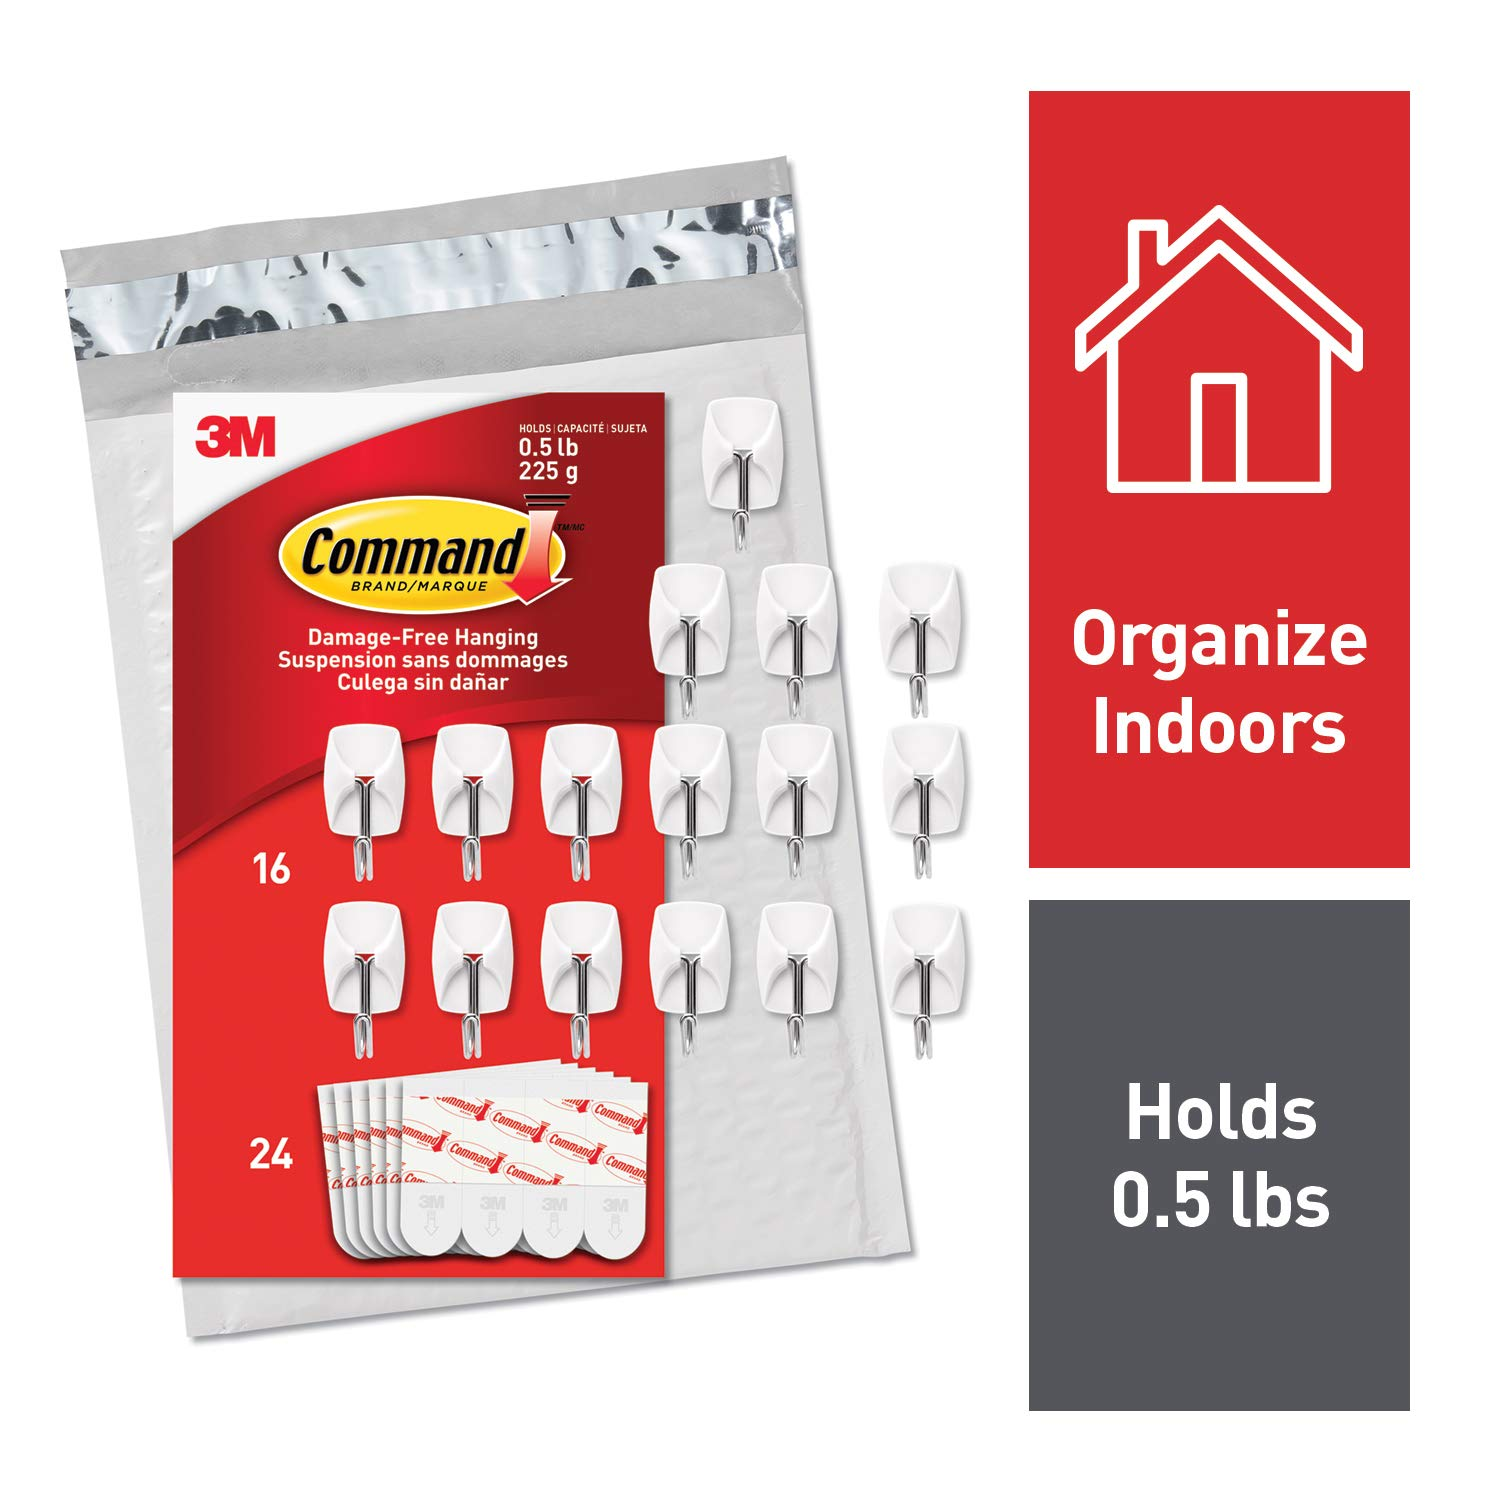 Command 3M Small Kitchen Hooks, White, Easy On, Easy Off, 16 Hooks, 24 Strips, (GP067-16NA)